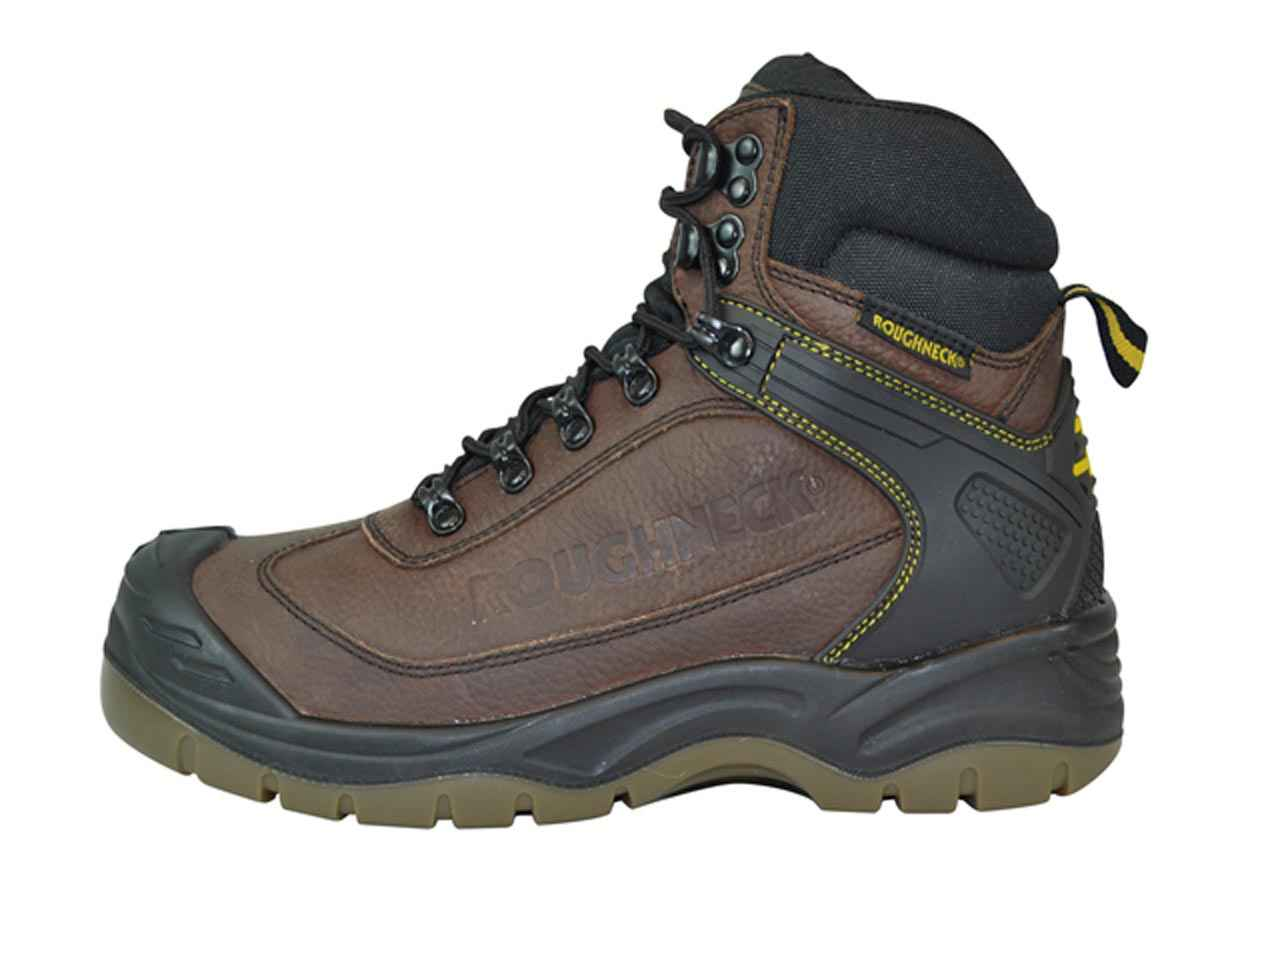 a8c0fd5643e Roughneck Tempest S3 Waterproof Hiker Boots Various Sizes